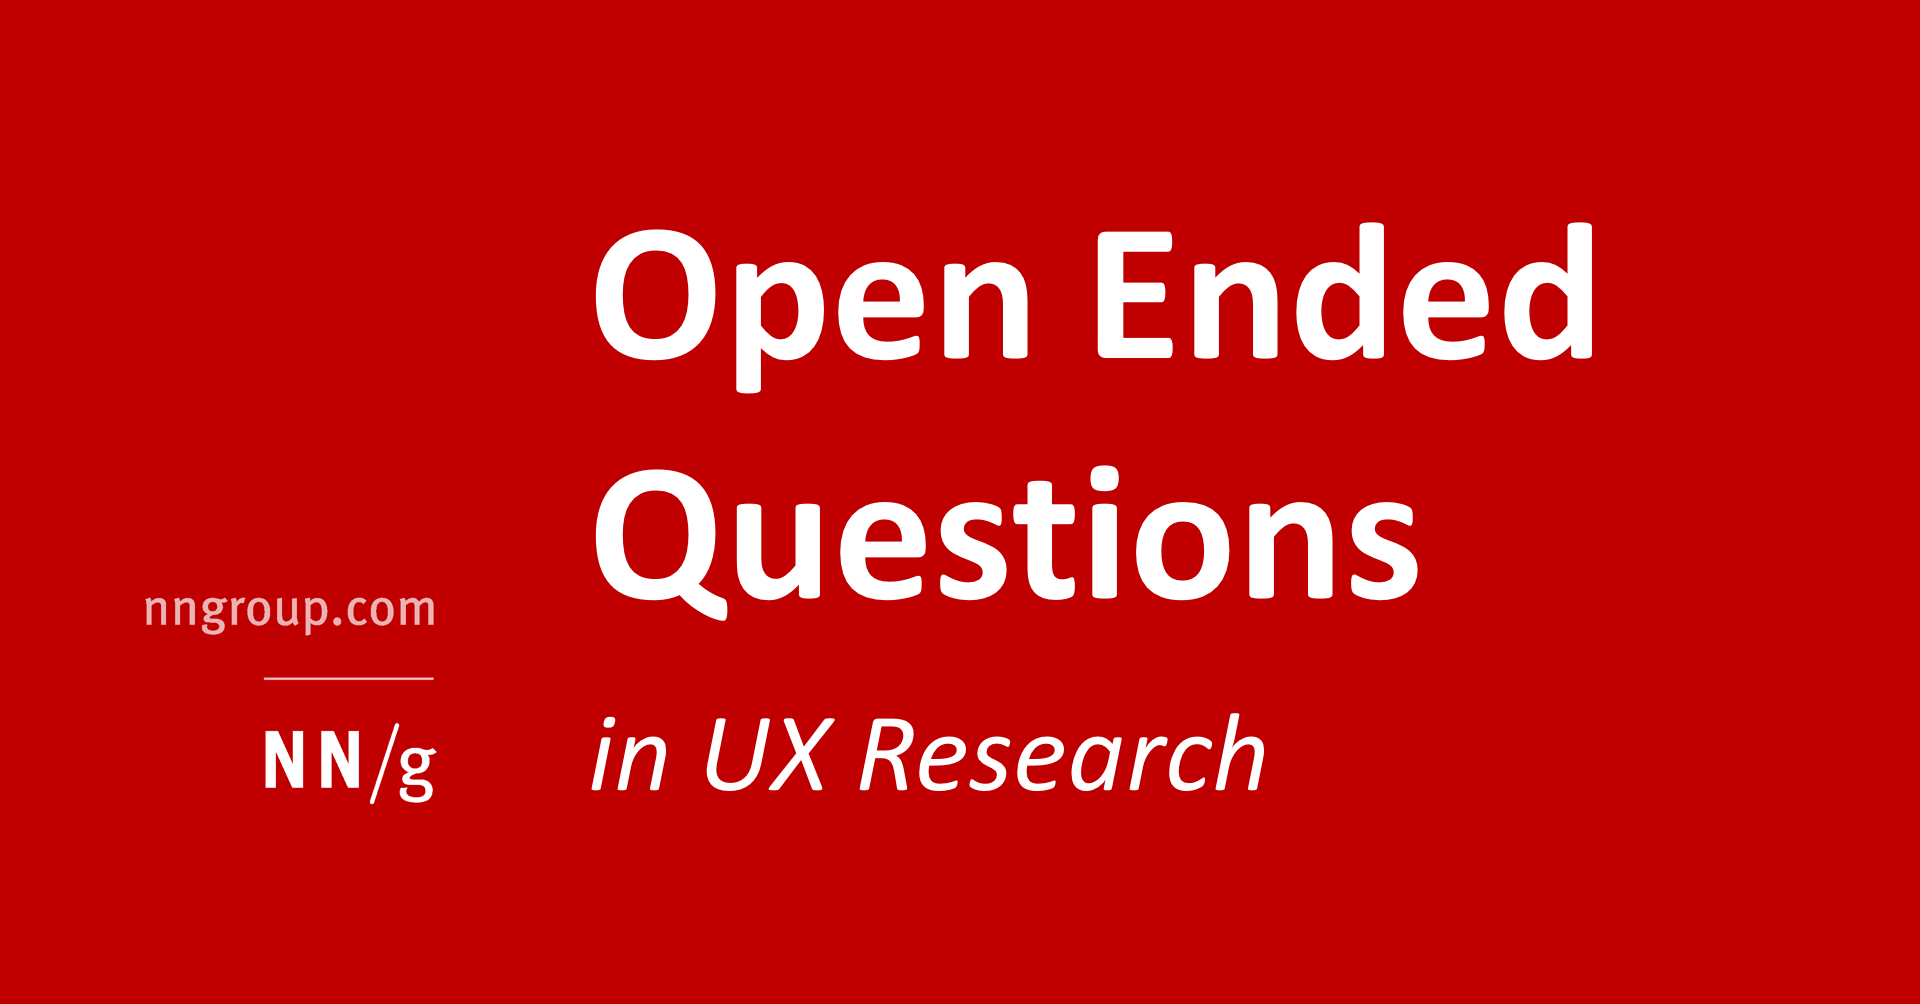 Closed Ended Questions In User Research